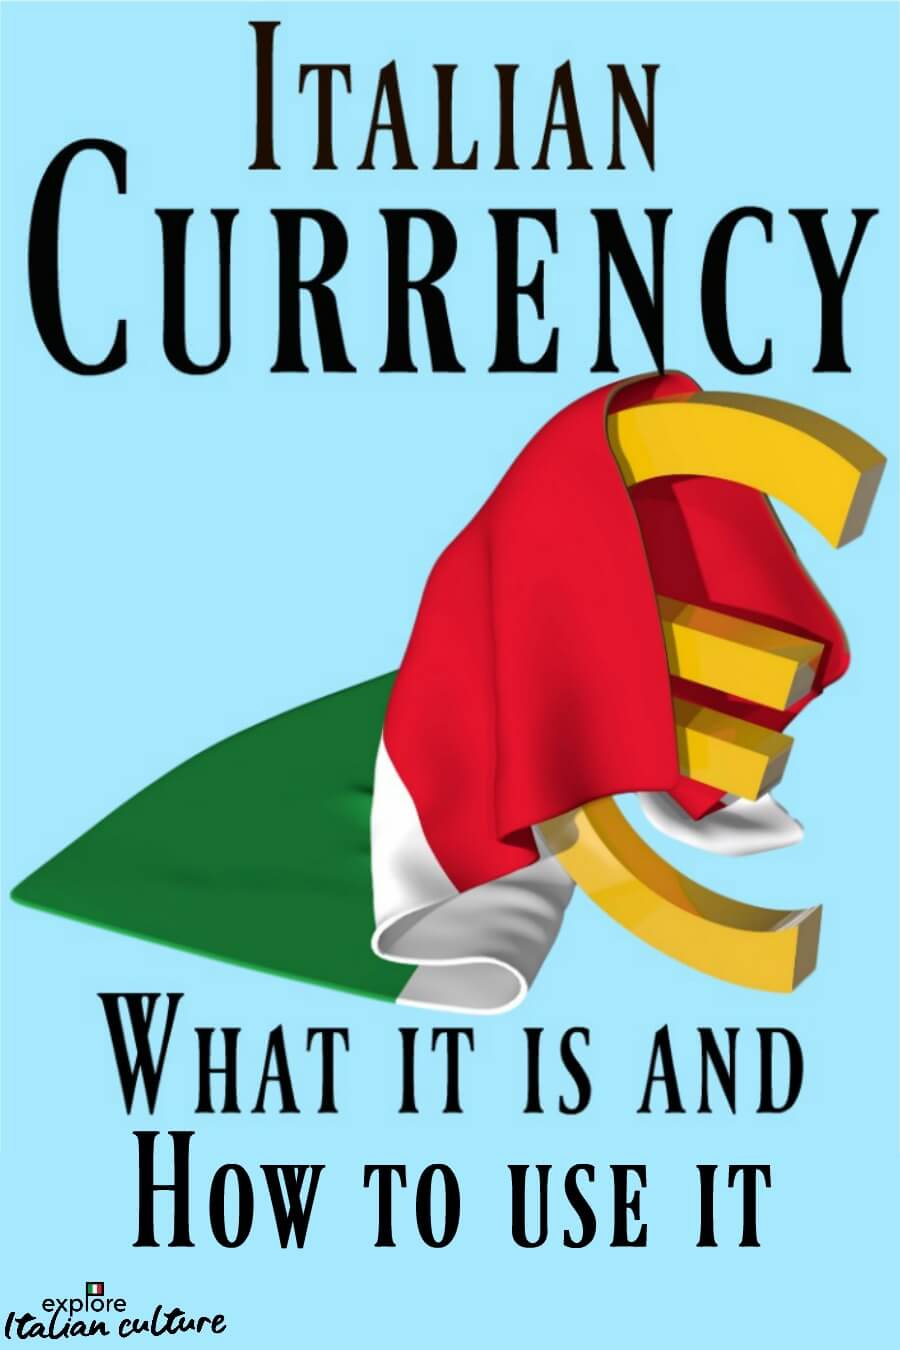 All You Need To Know About Old Italian Currency The New Euro And Most Cost Effective Ways Of Ing It